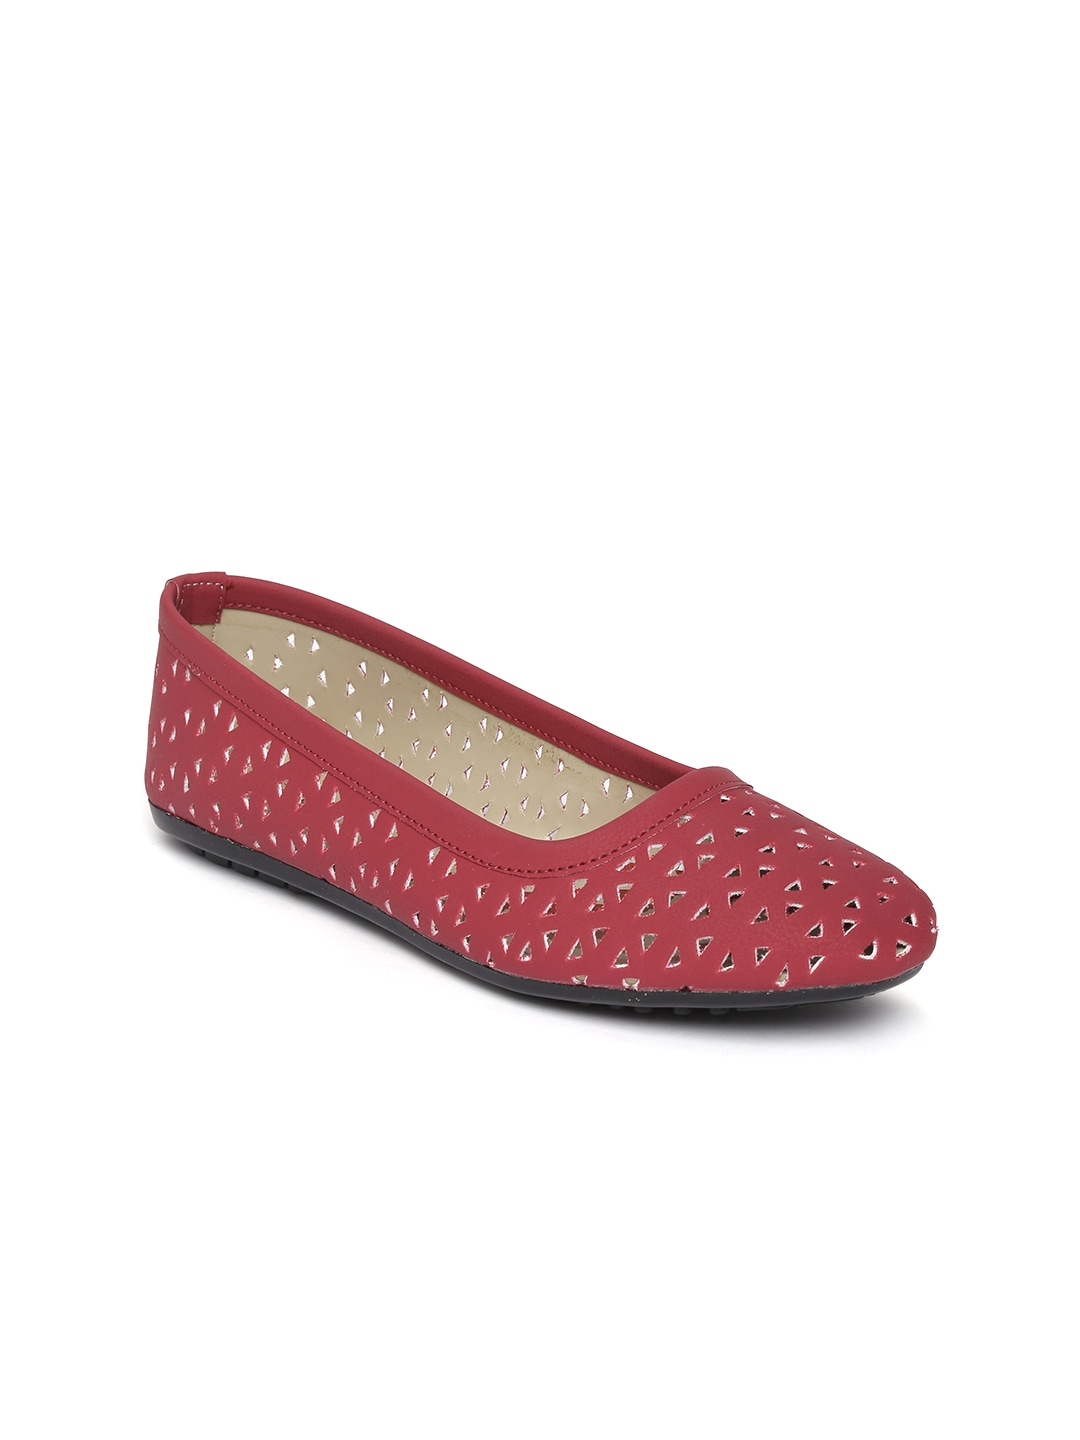 Exotica EXOTICA Women Red Ballerinas